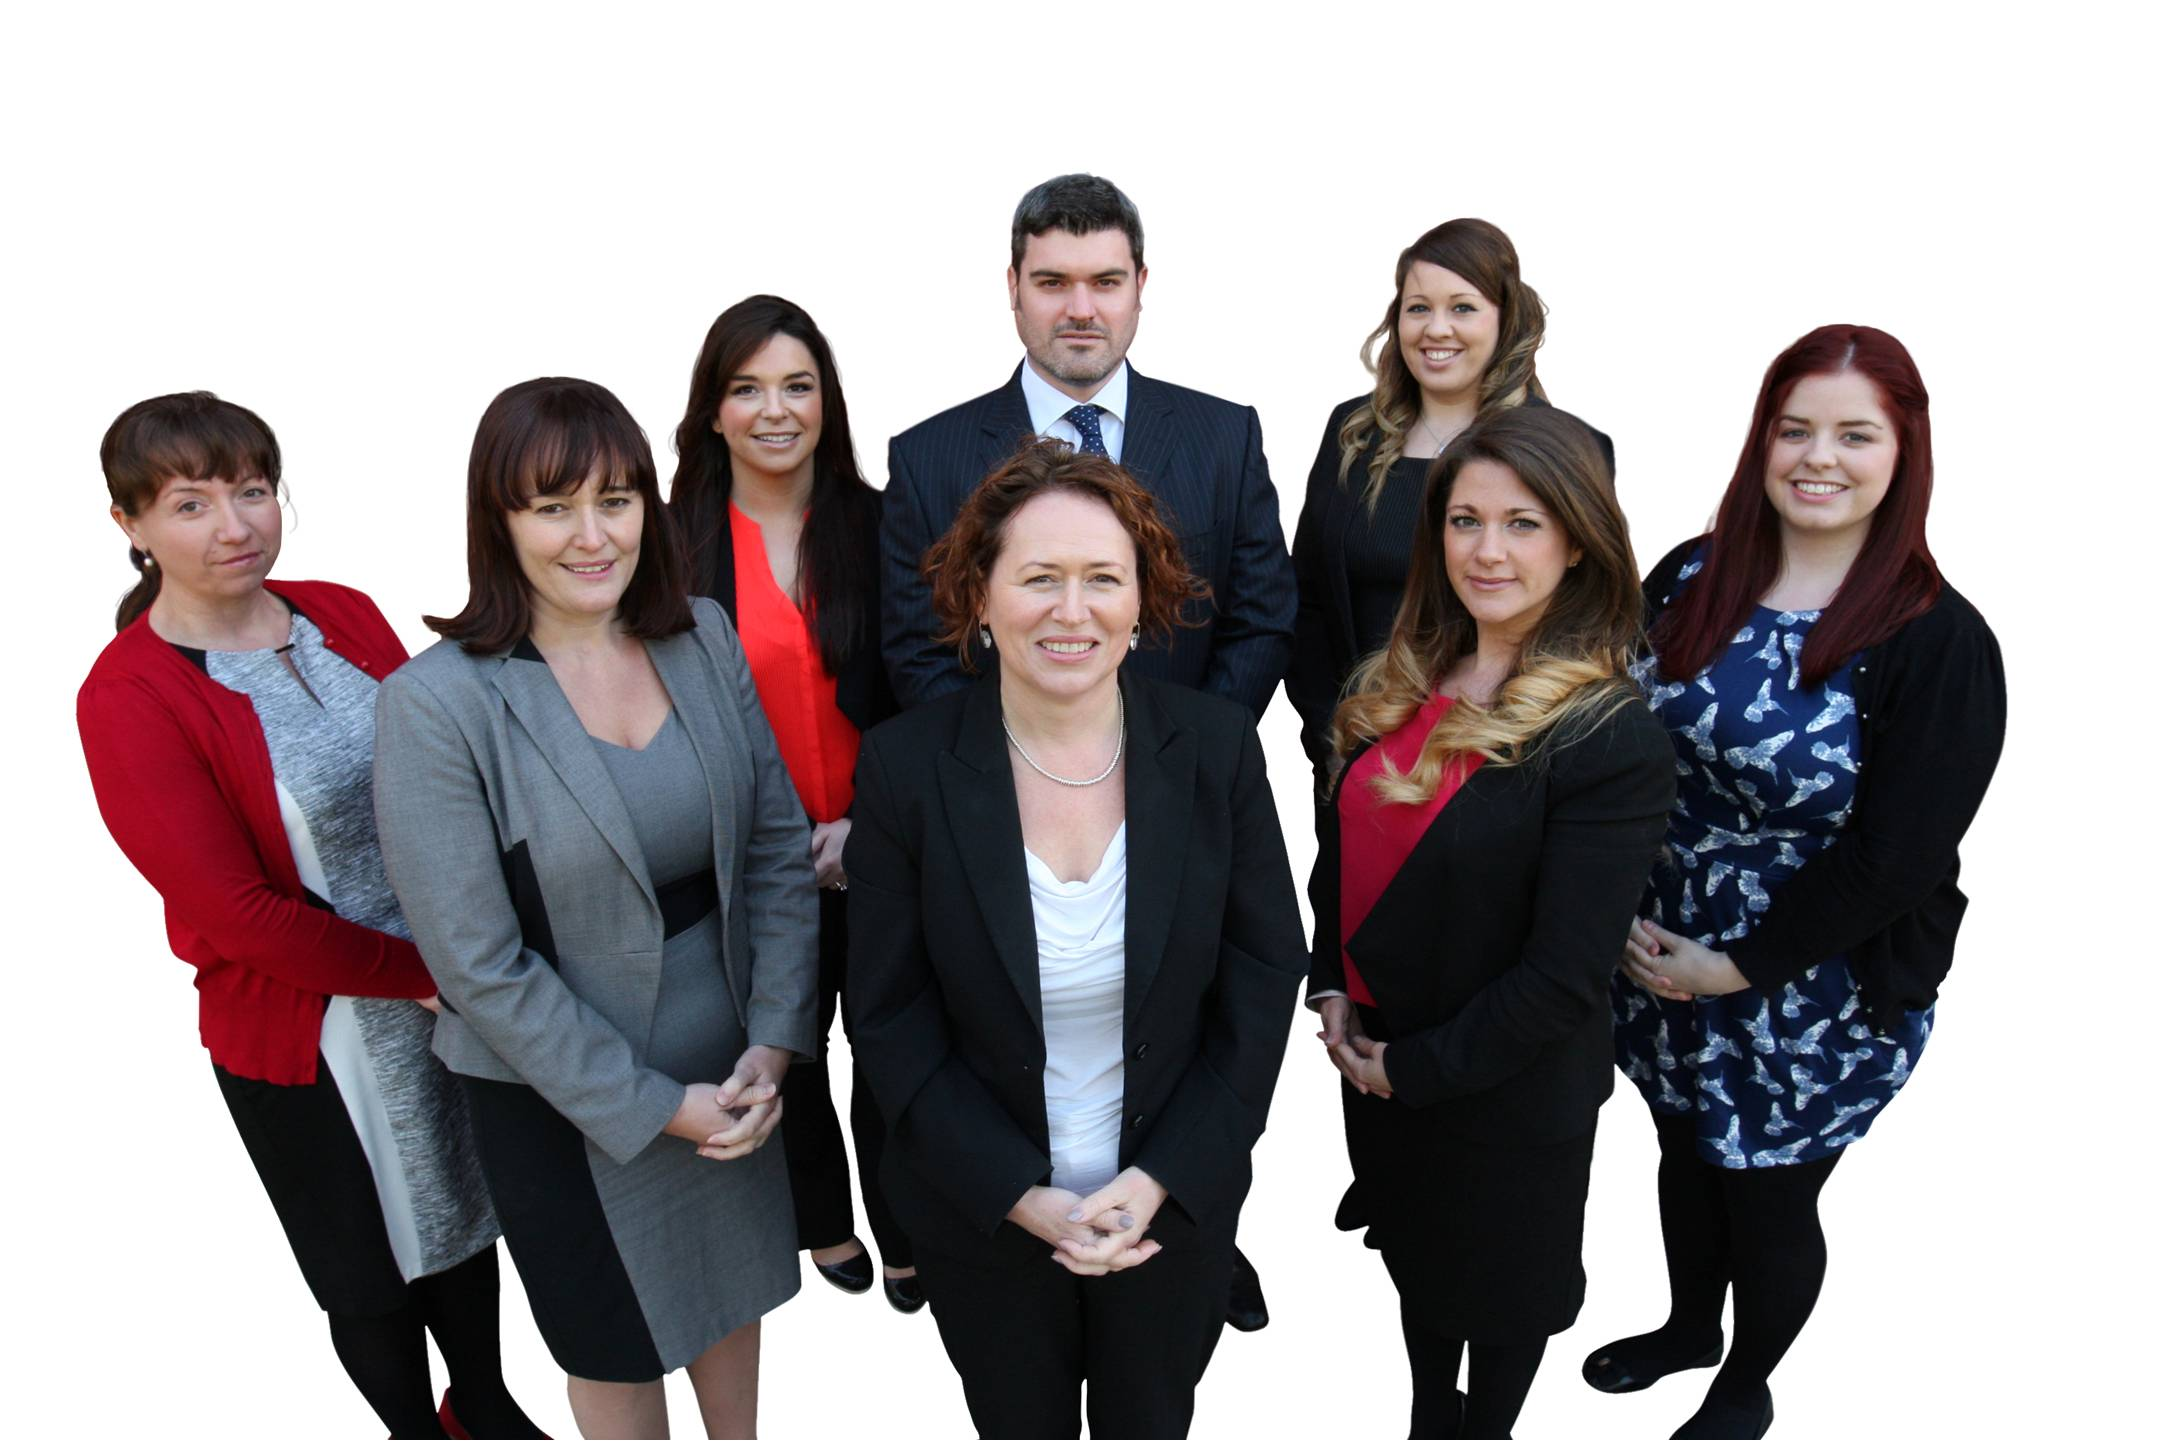 Our Skin Cancer expert team. We deal with medical negligence claims arising from Skin Cancer.